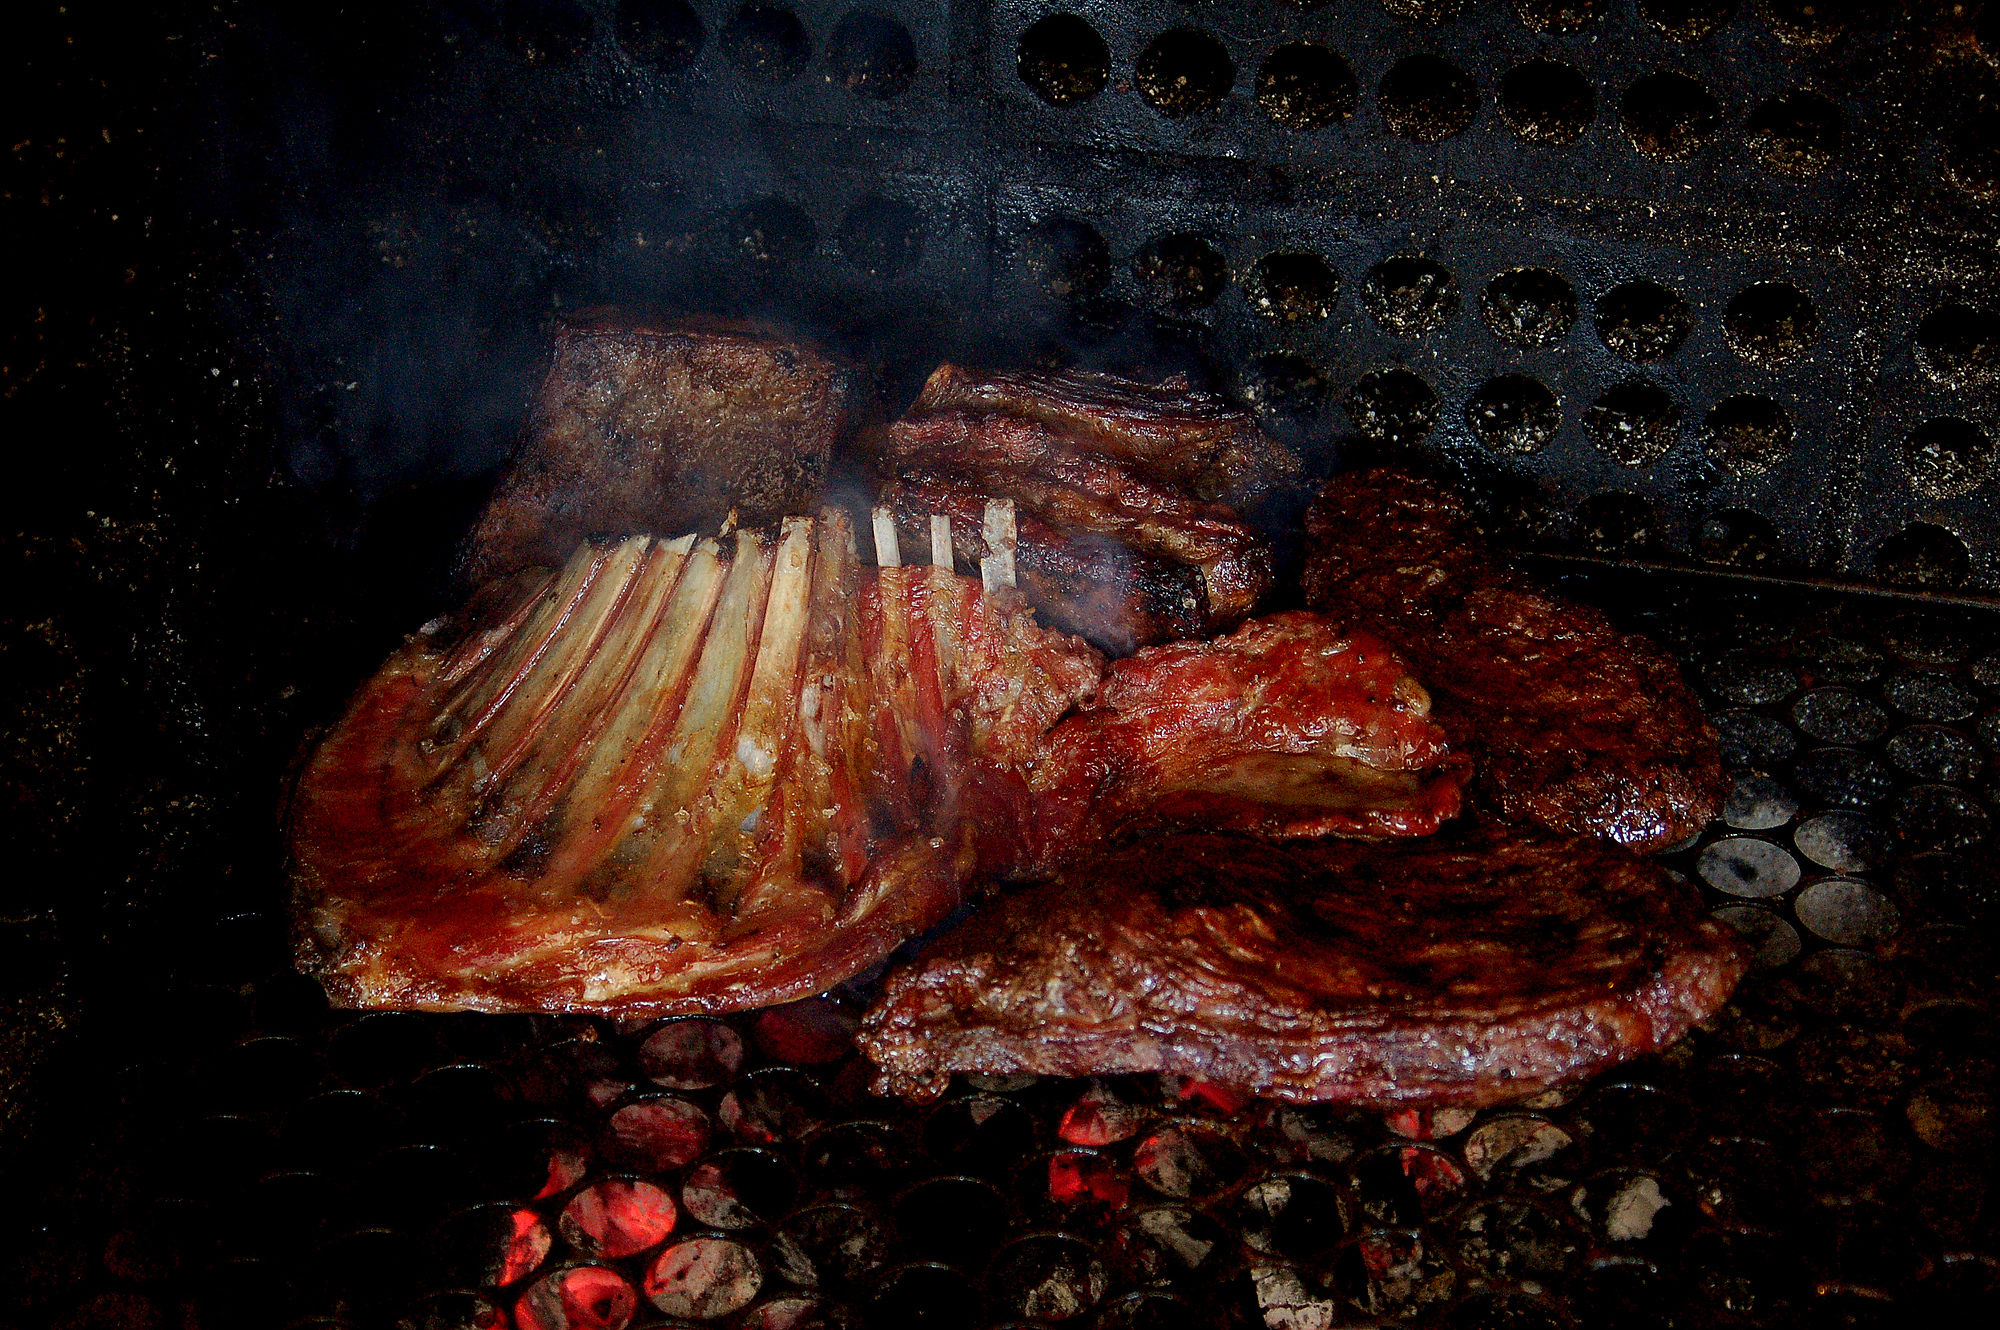 Asado or barbecue is an important Brazilian food as much of the country eats beef.